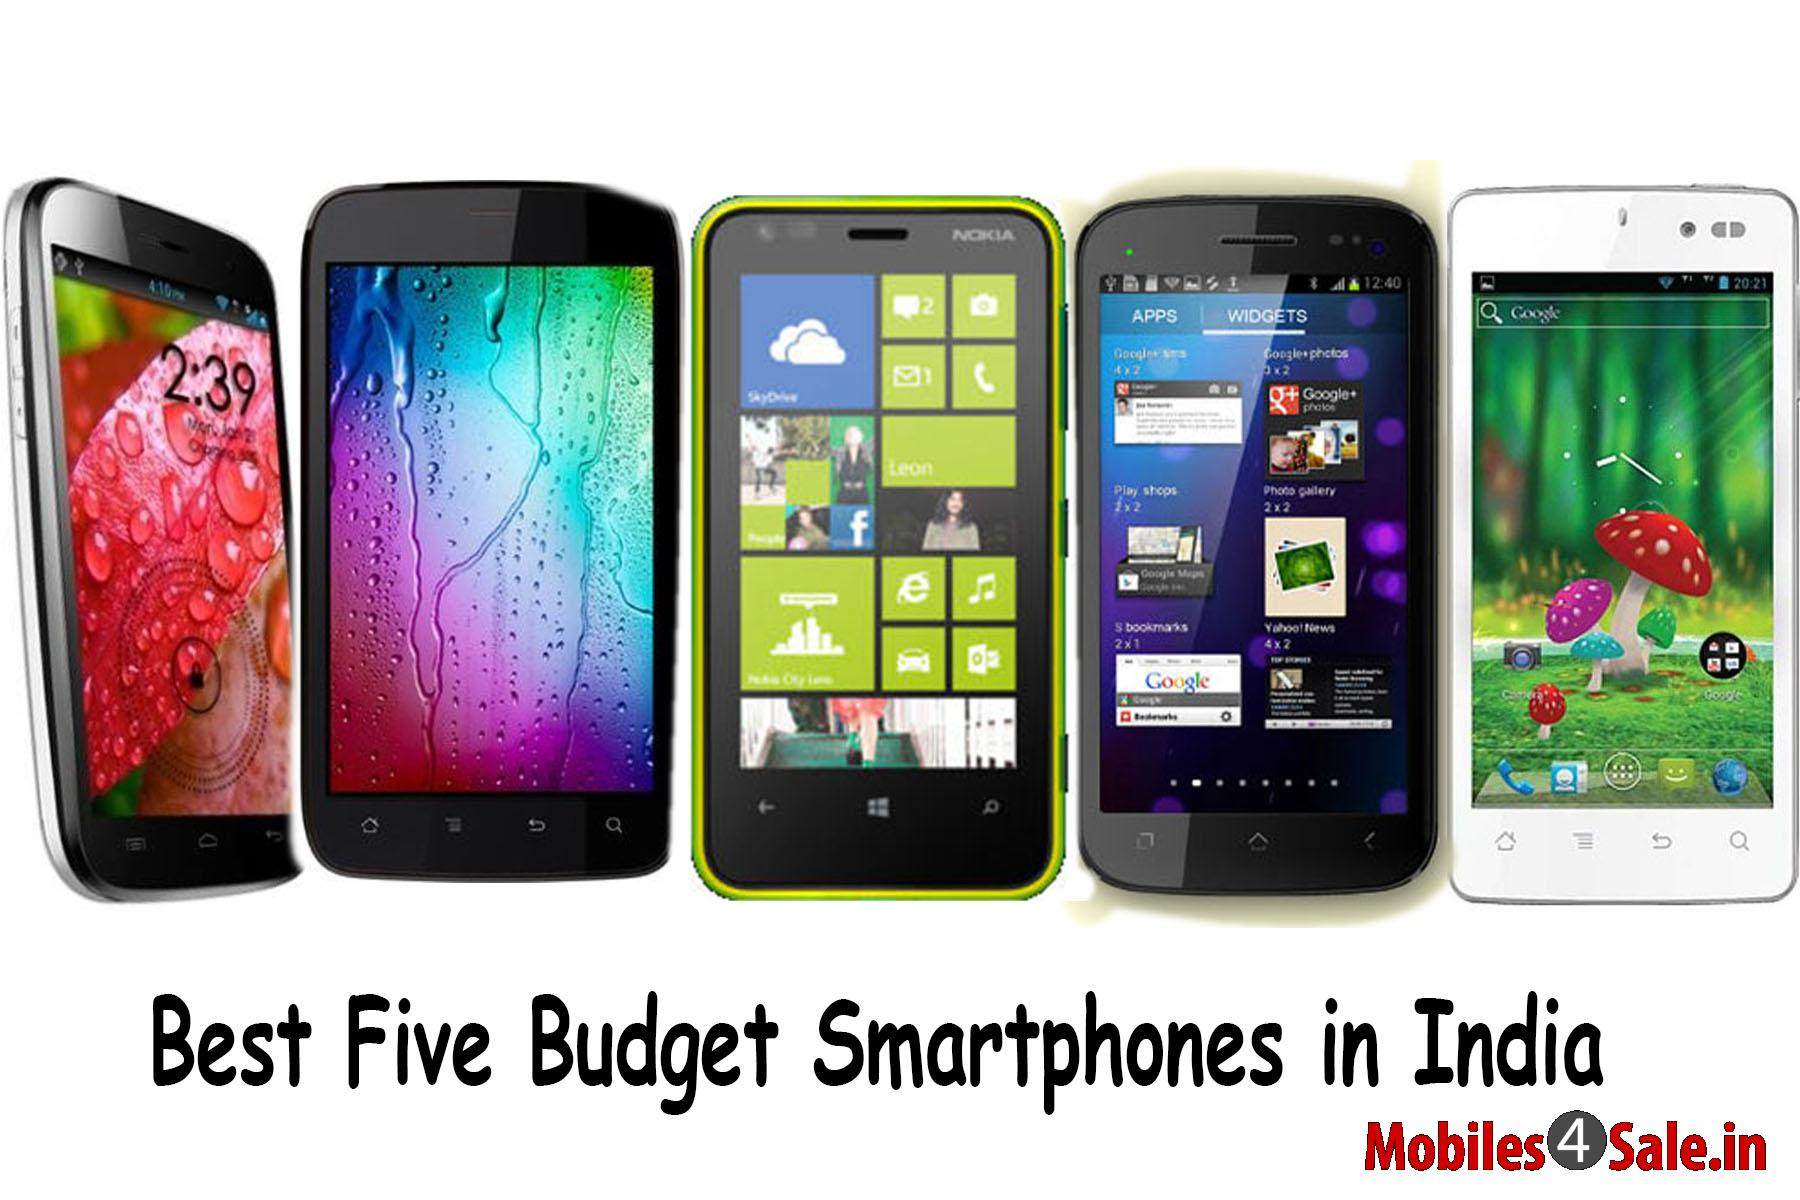 Best Five Budget Smartphones in India